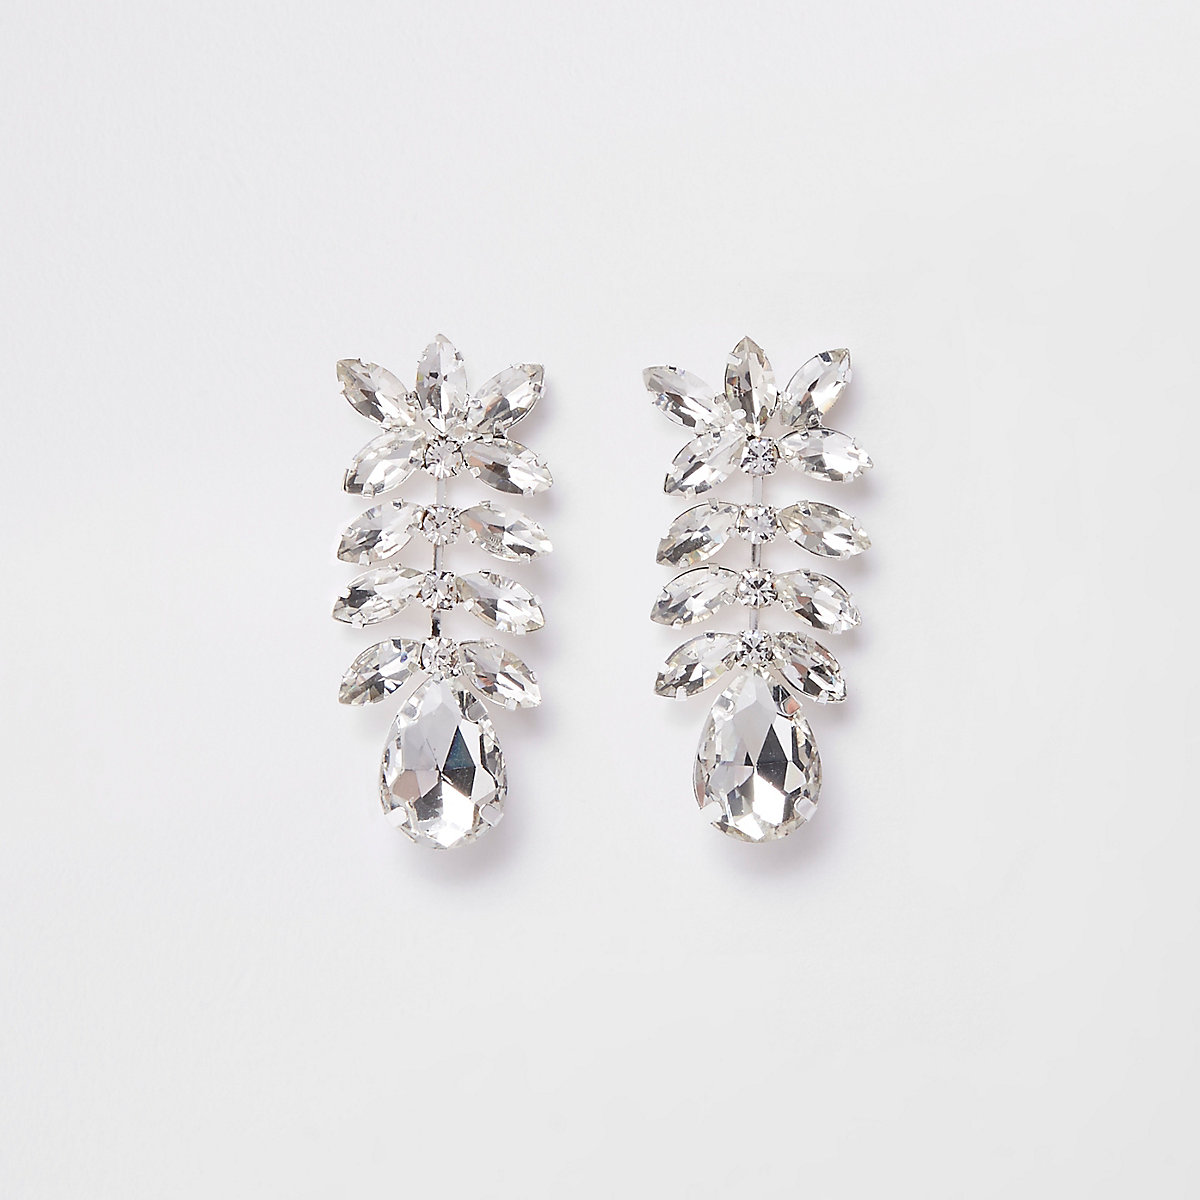 Silver tone rhinestone jewel drop earrings